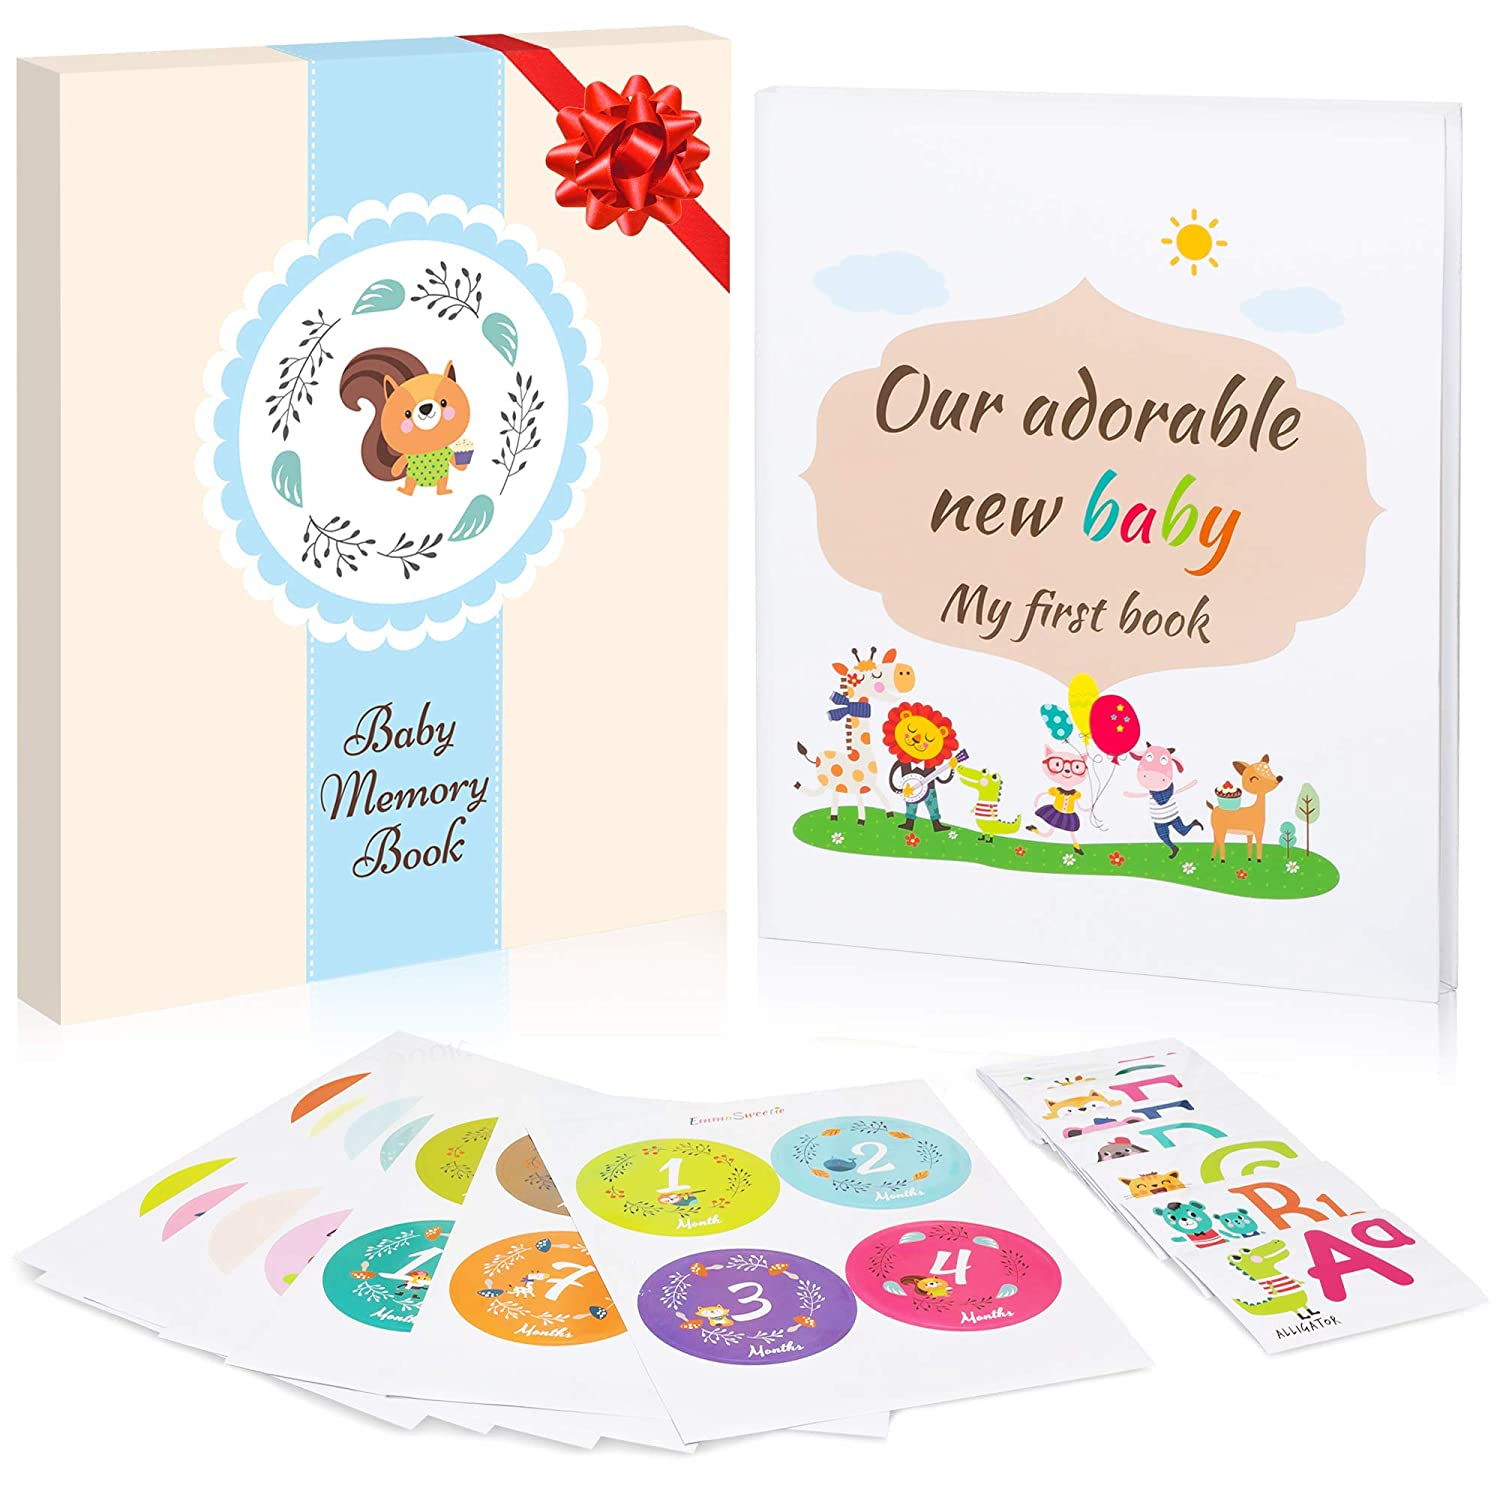 Baby Memory Book Blue Gift Box 28 Milestone Stickers. Capture Baby s First 5 Years of Milestones, Memories, Moments, Holidays, and Firsts in This 64-Page Journal Scrapbook by EmmaSweetie